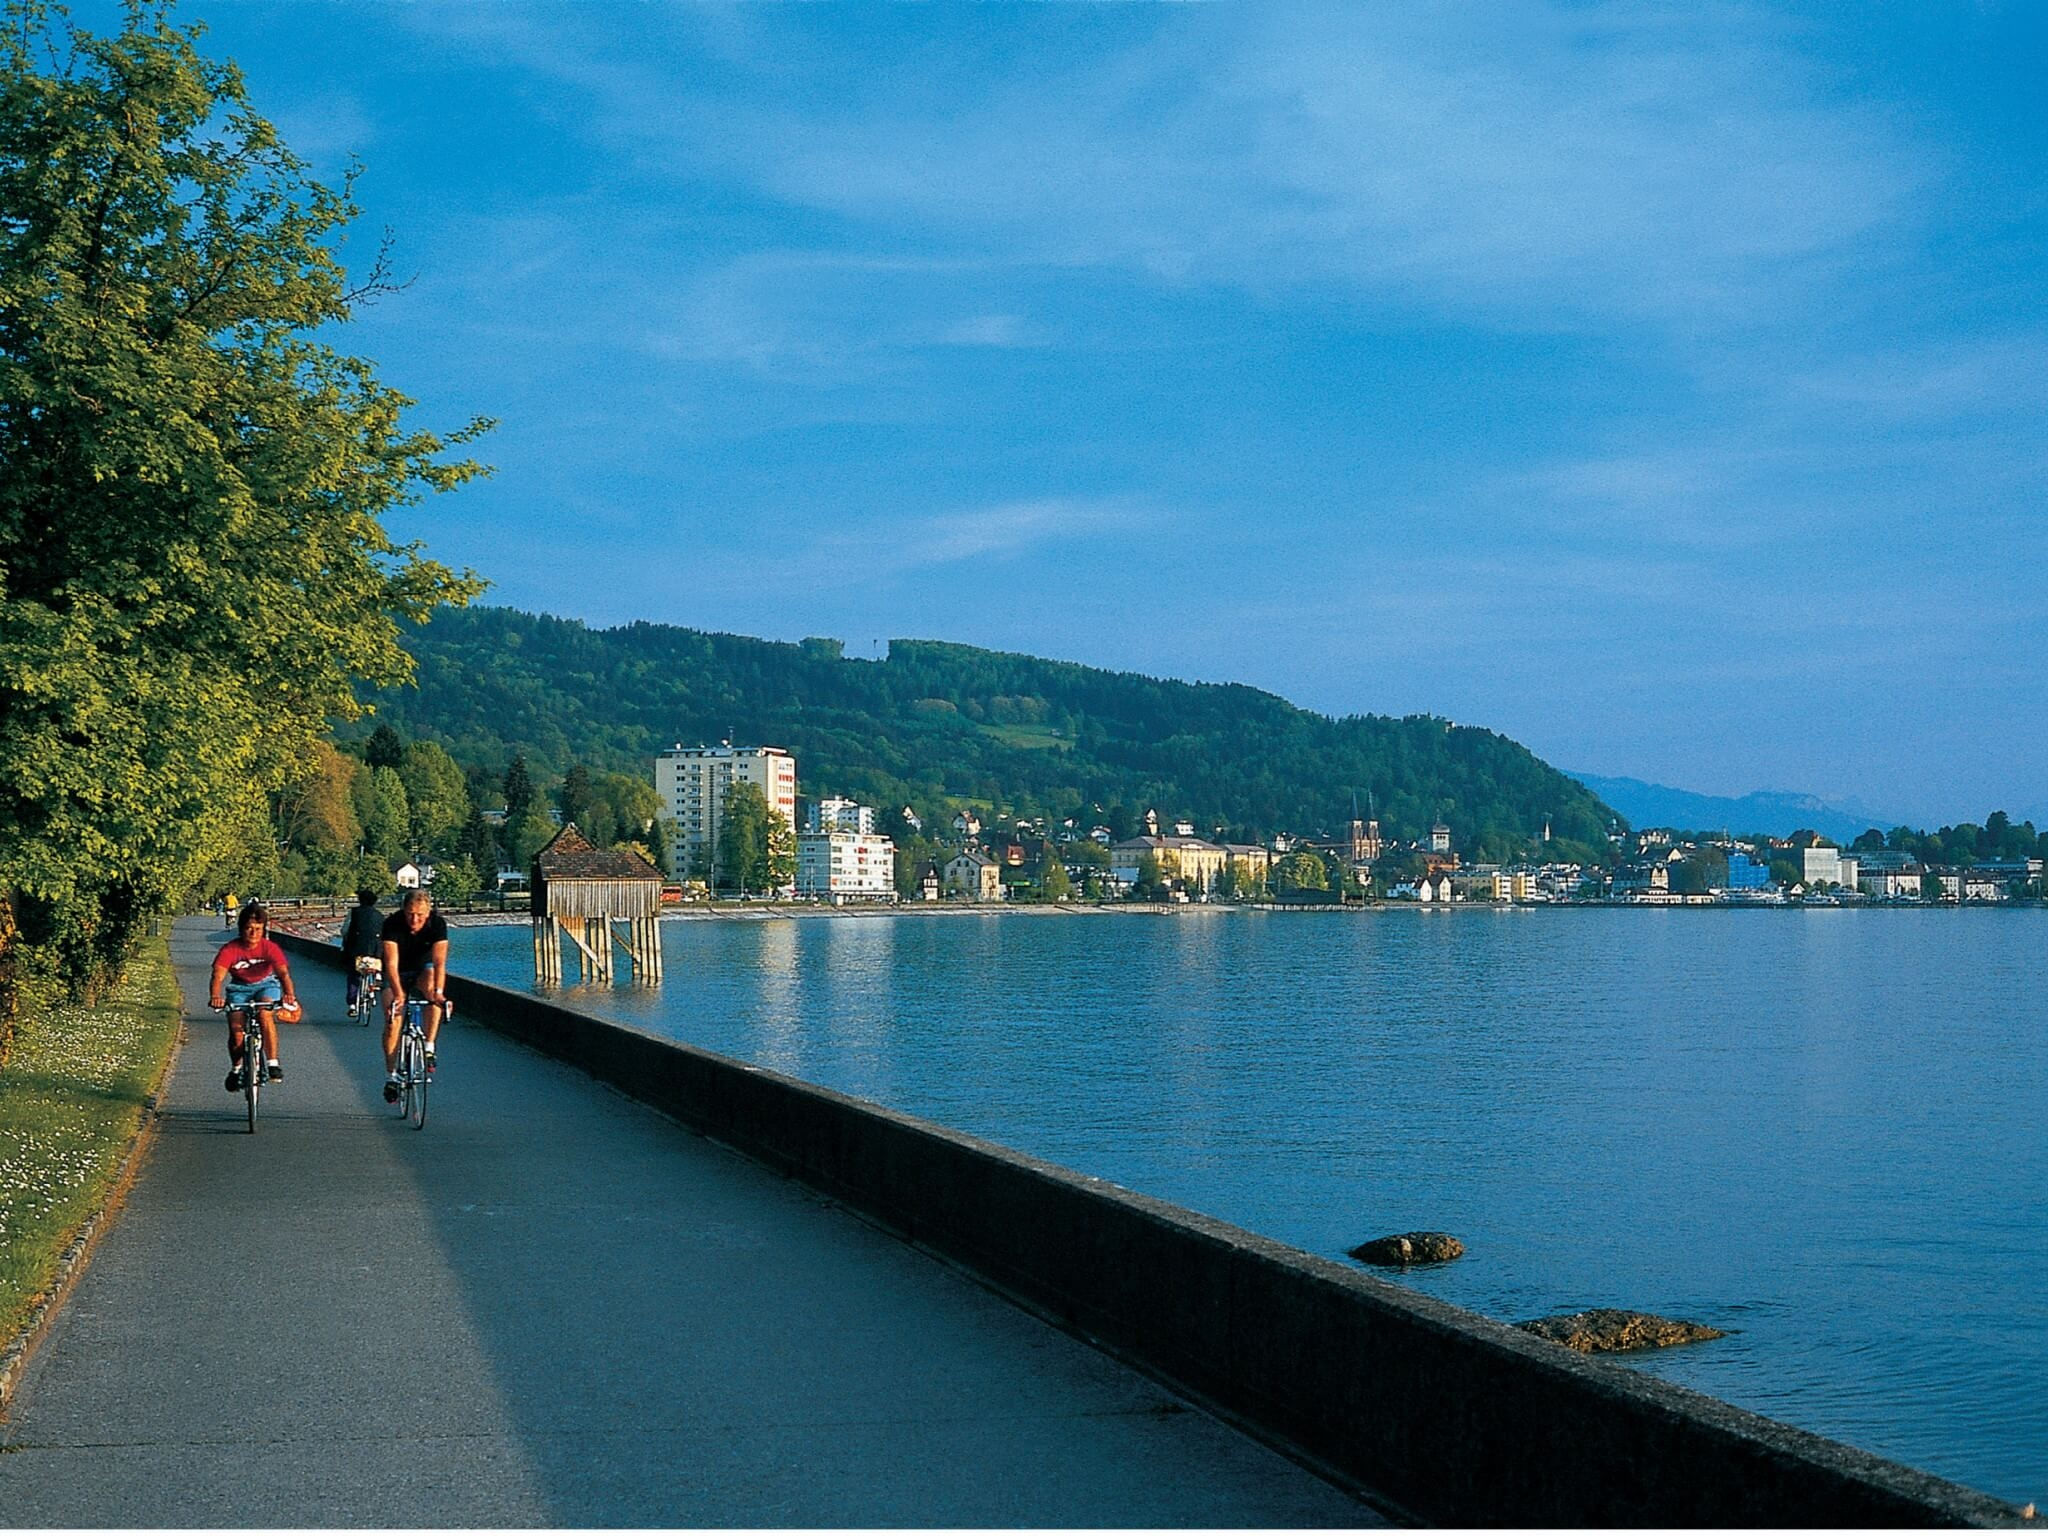 Hotel Bodensee: Four Points by Sheraton Panoramahaus Dornbirn